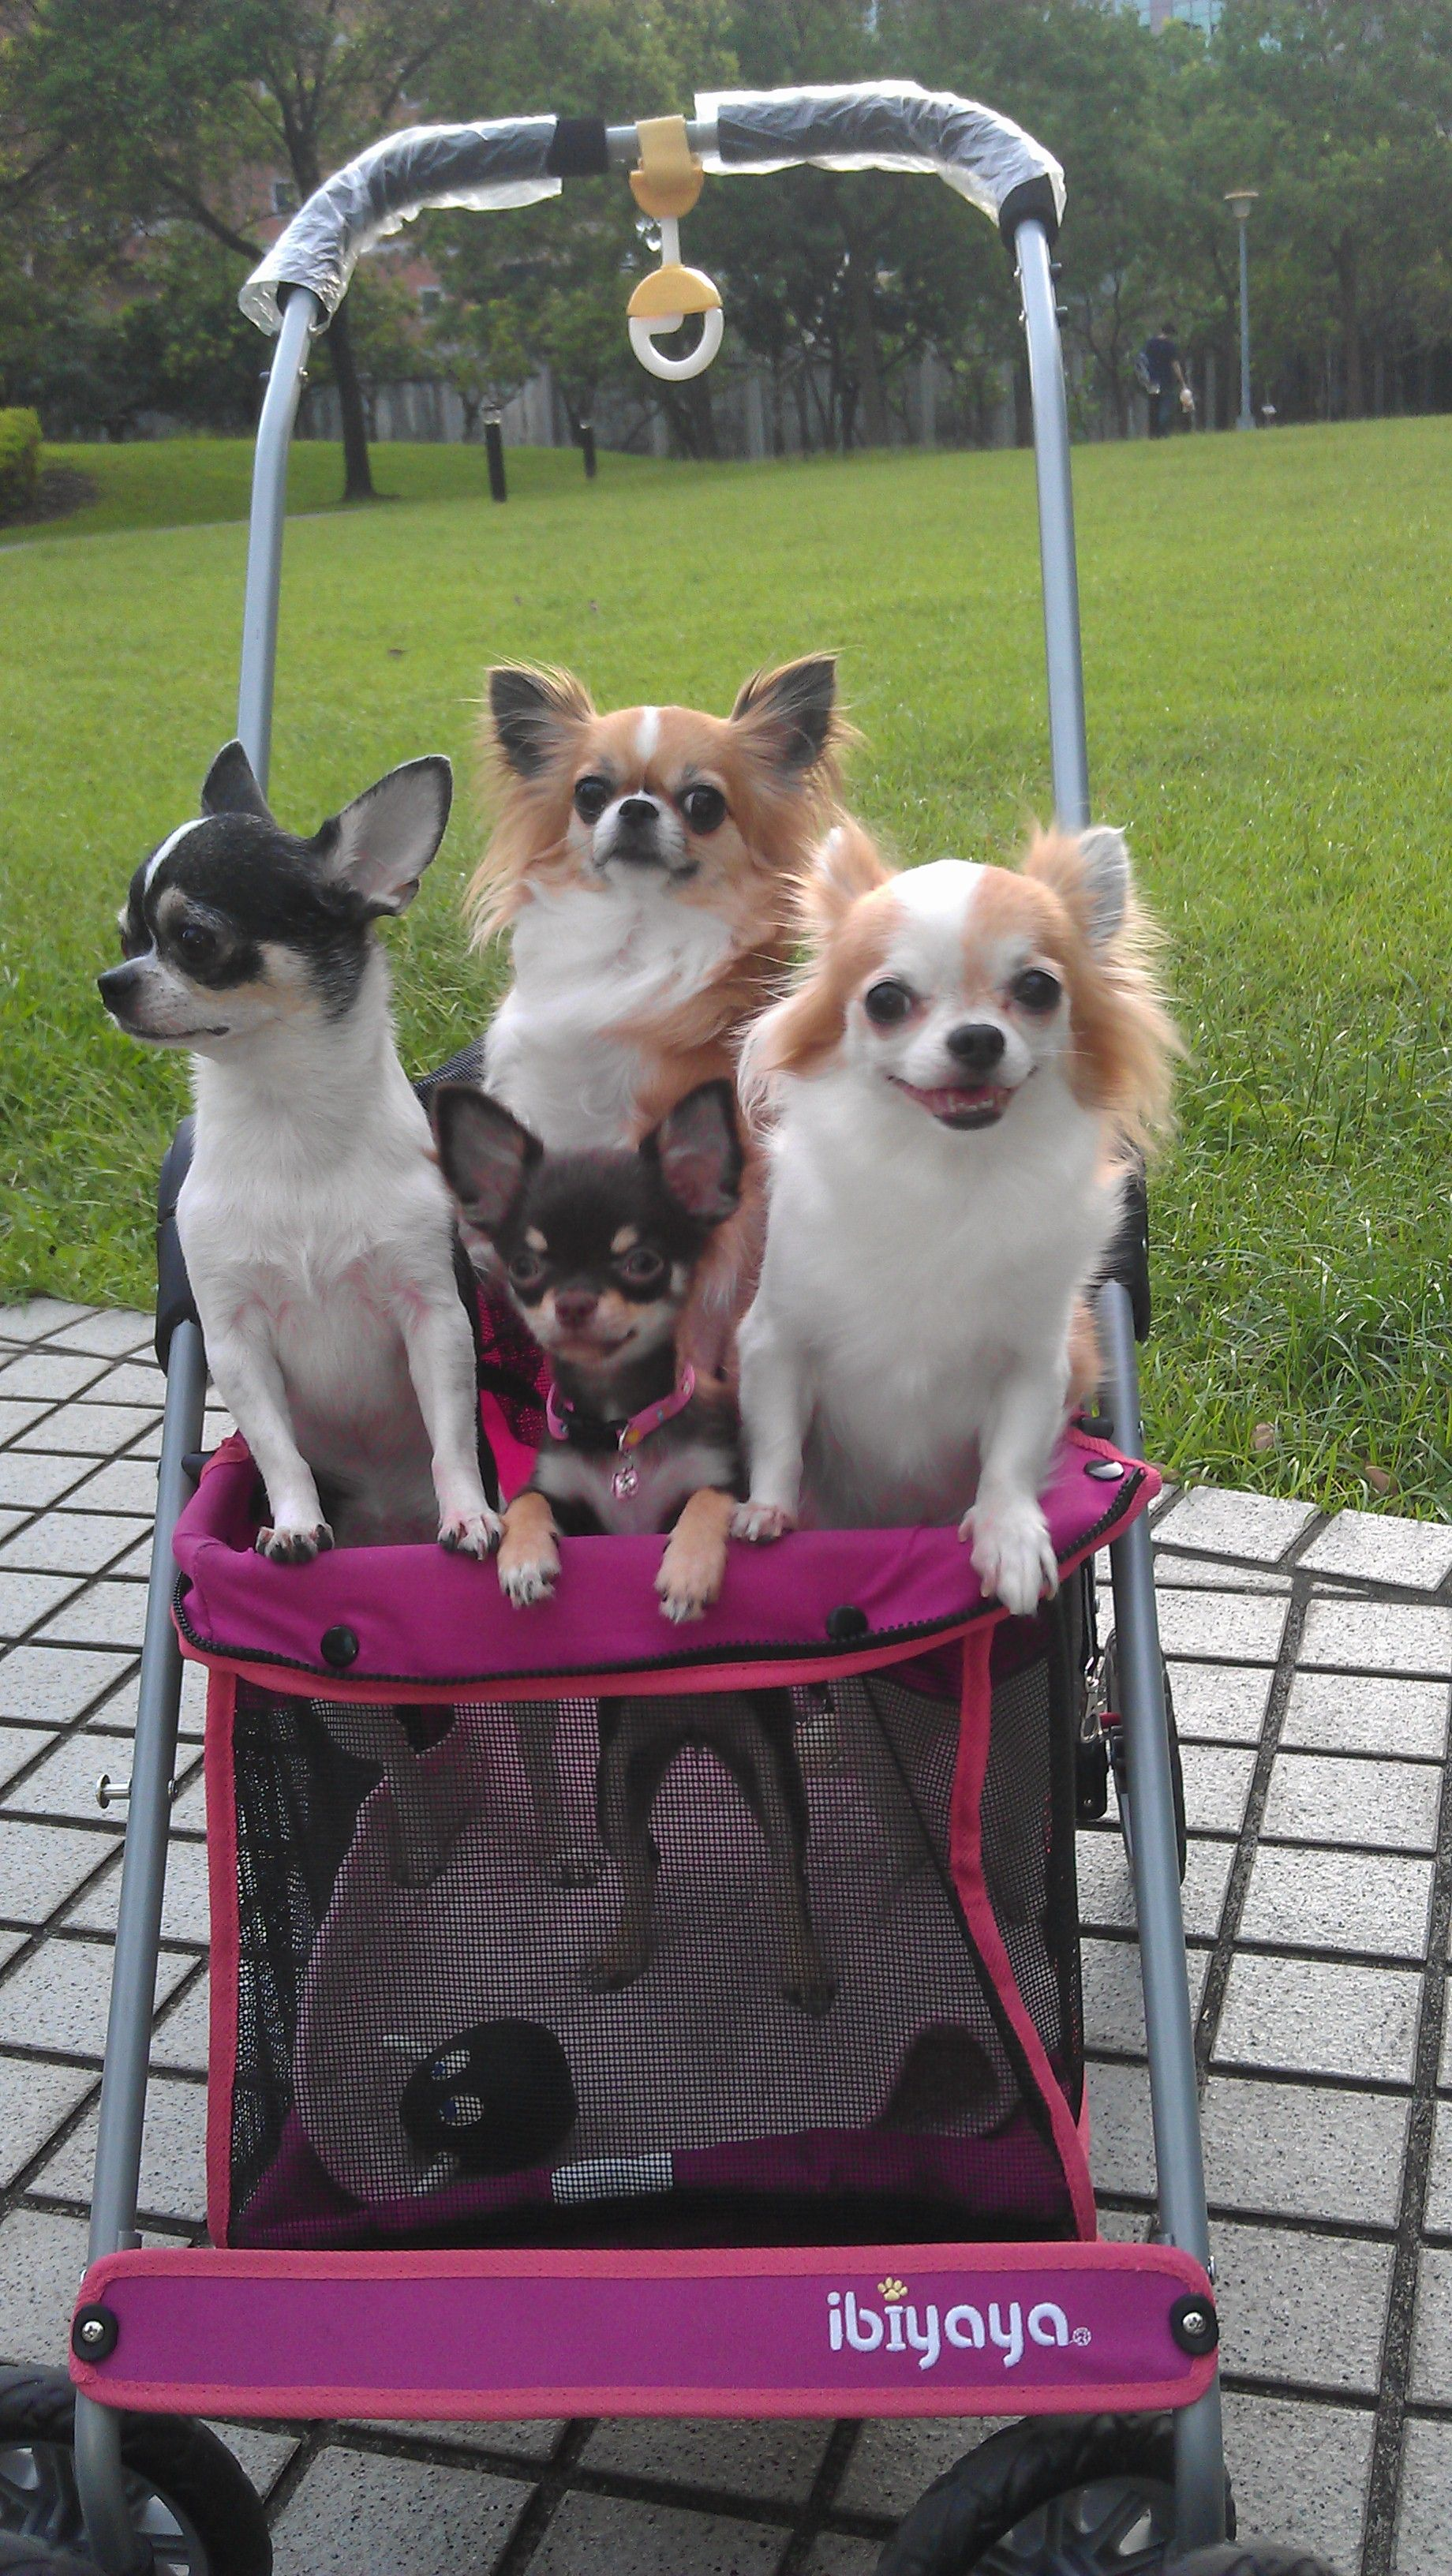 Chihuahua paryty in IBIYAYA Pink Pet Jogger. City Elite